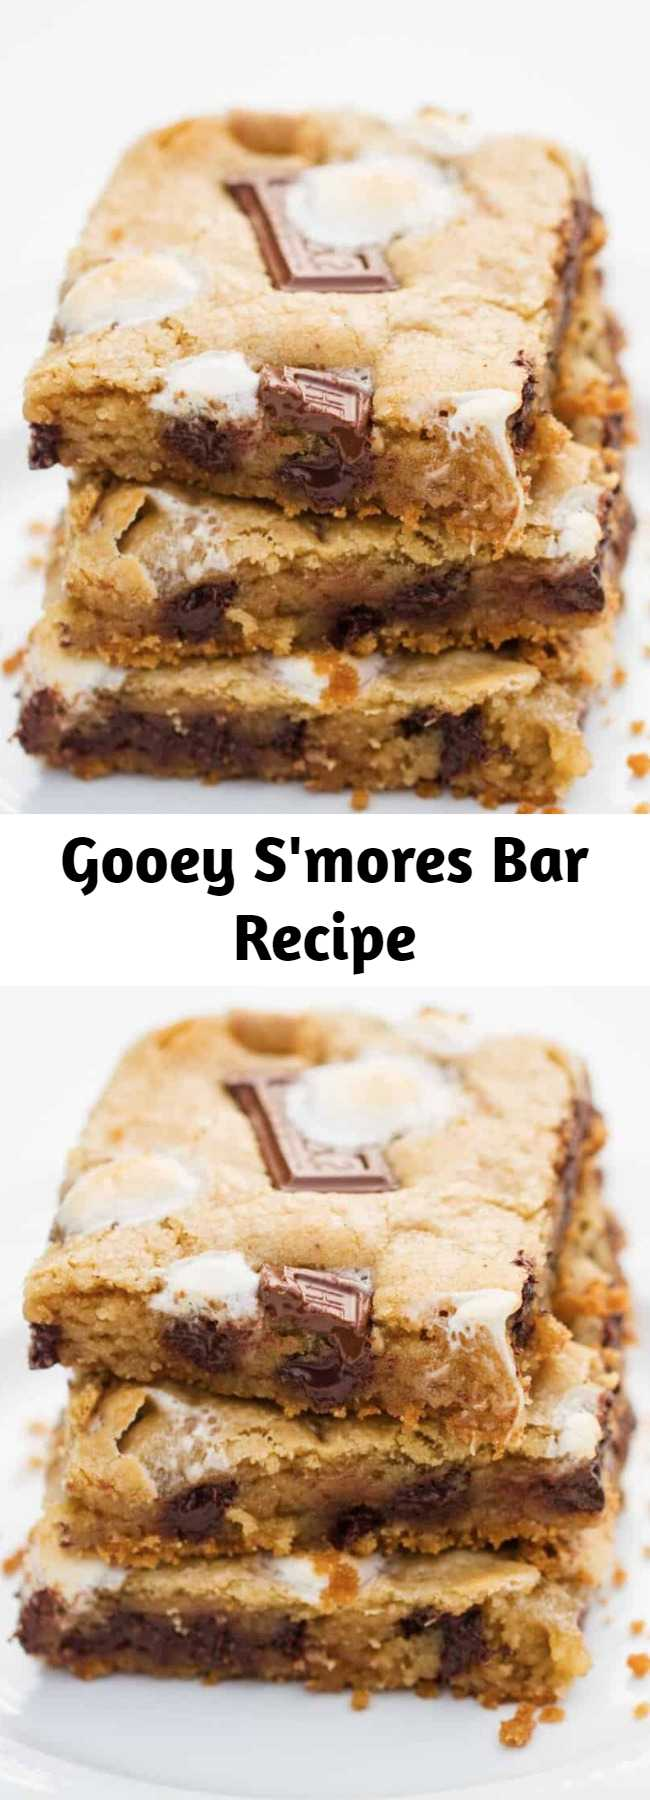 Gooey S'mores Bar Recipe - Gooey s'mores bars filled with a graham cracker crust and loaded with chocolate chips, marshmallows and chocolate candy bar pieces. The ultimate cookie bar recipe that is out of this world! It's not summer time without some sort of s'mores dessert!!